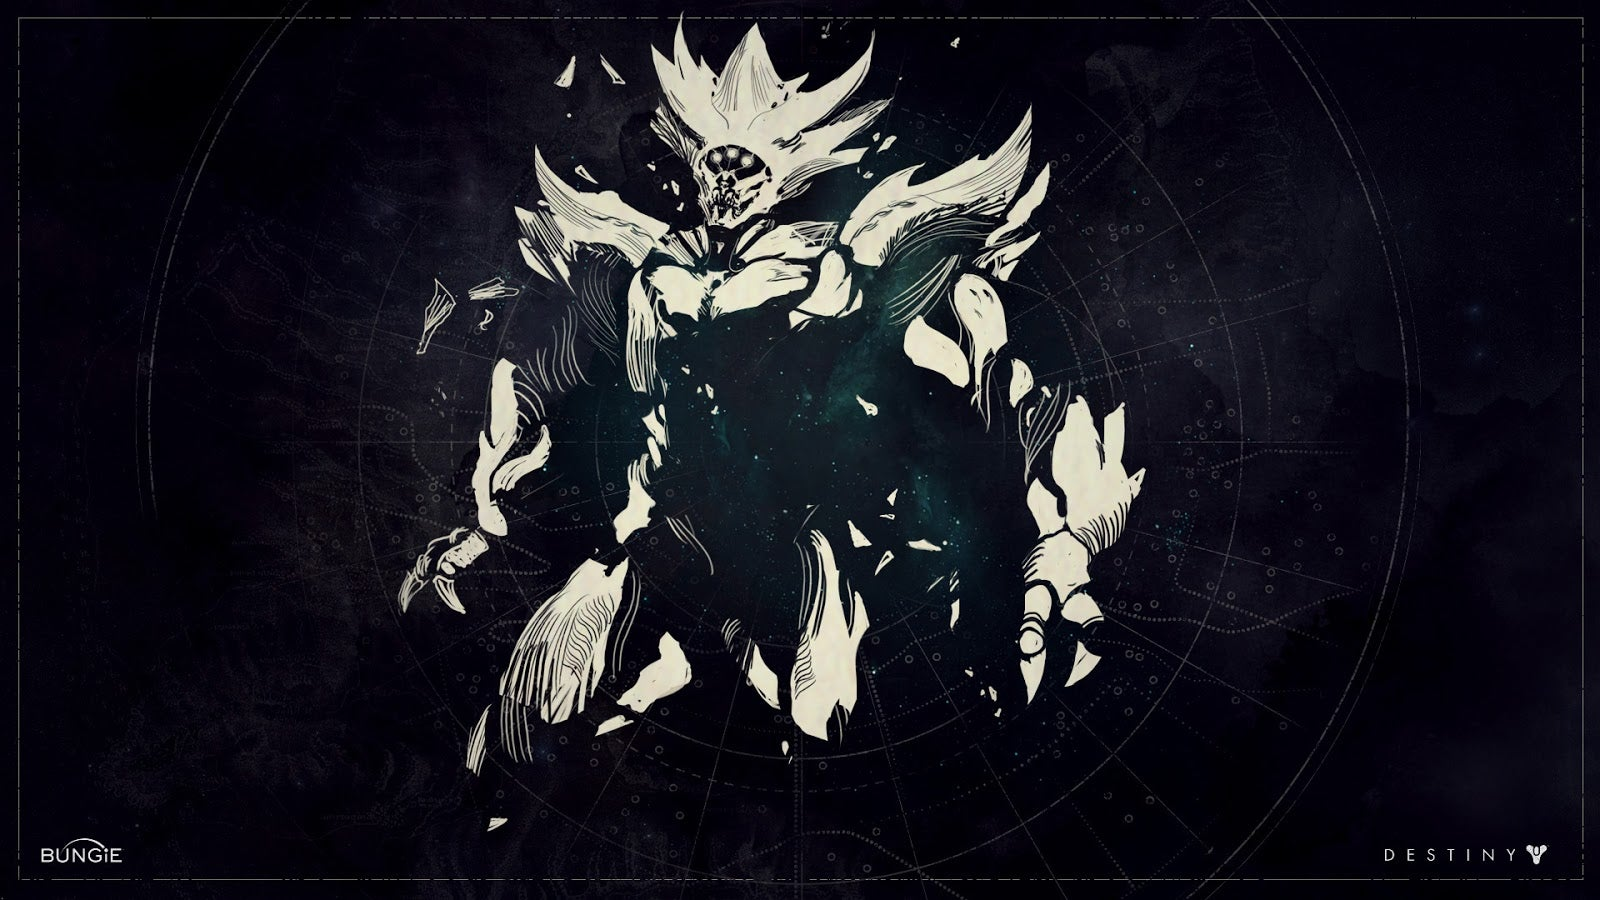 The Taken King's Art, Like Destiny's, Is Killer